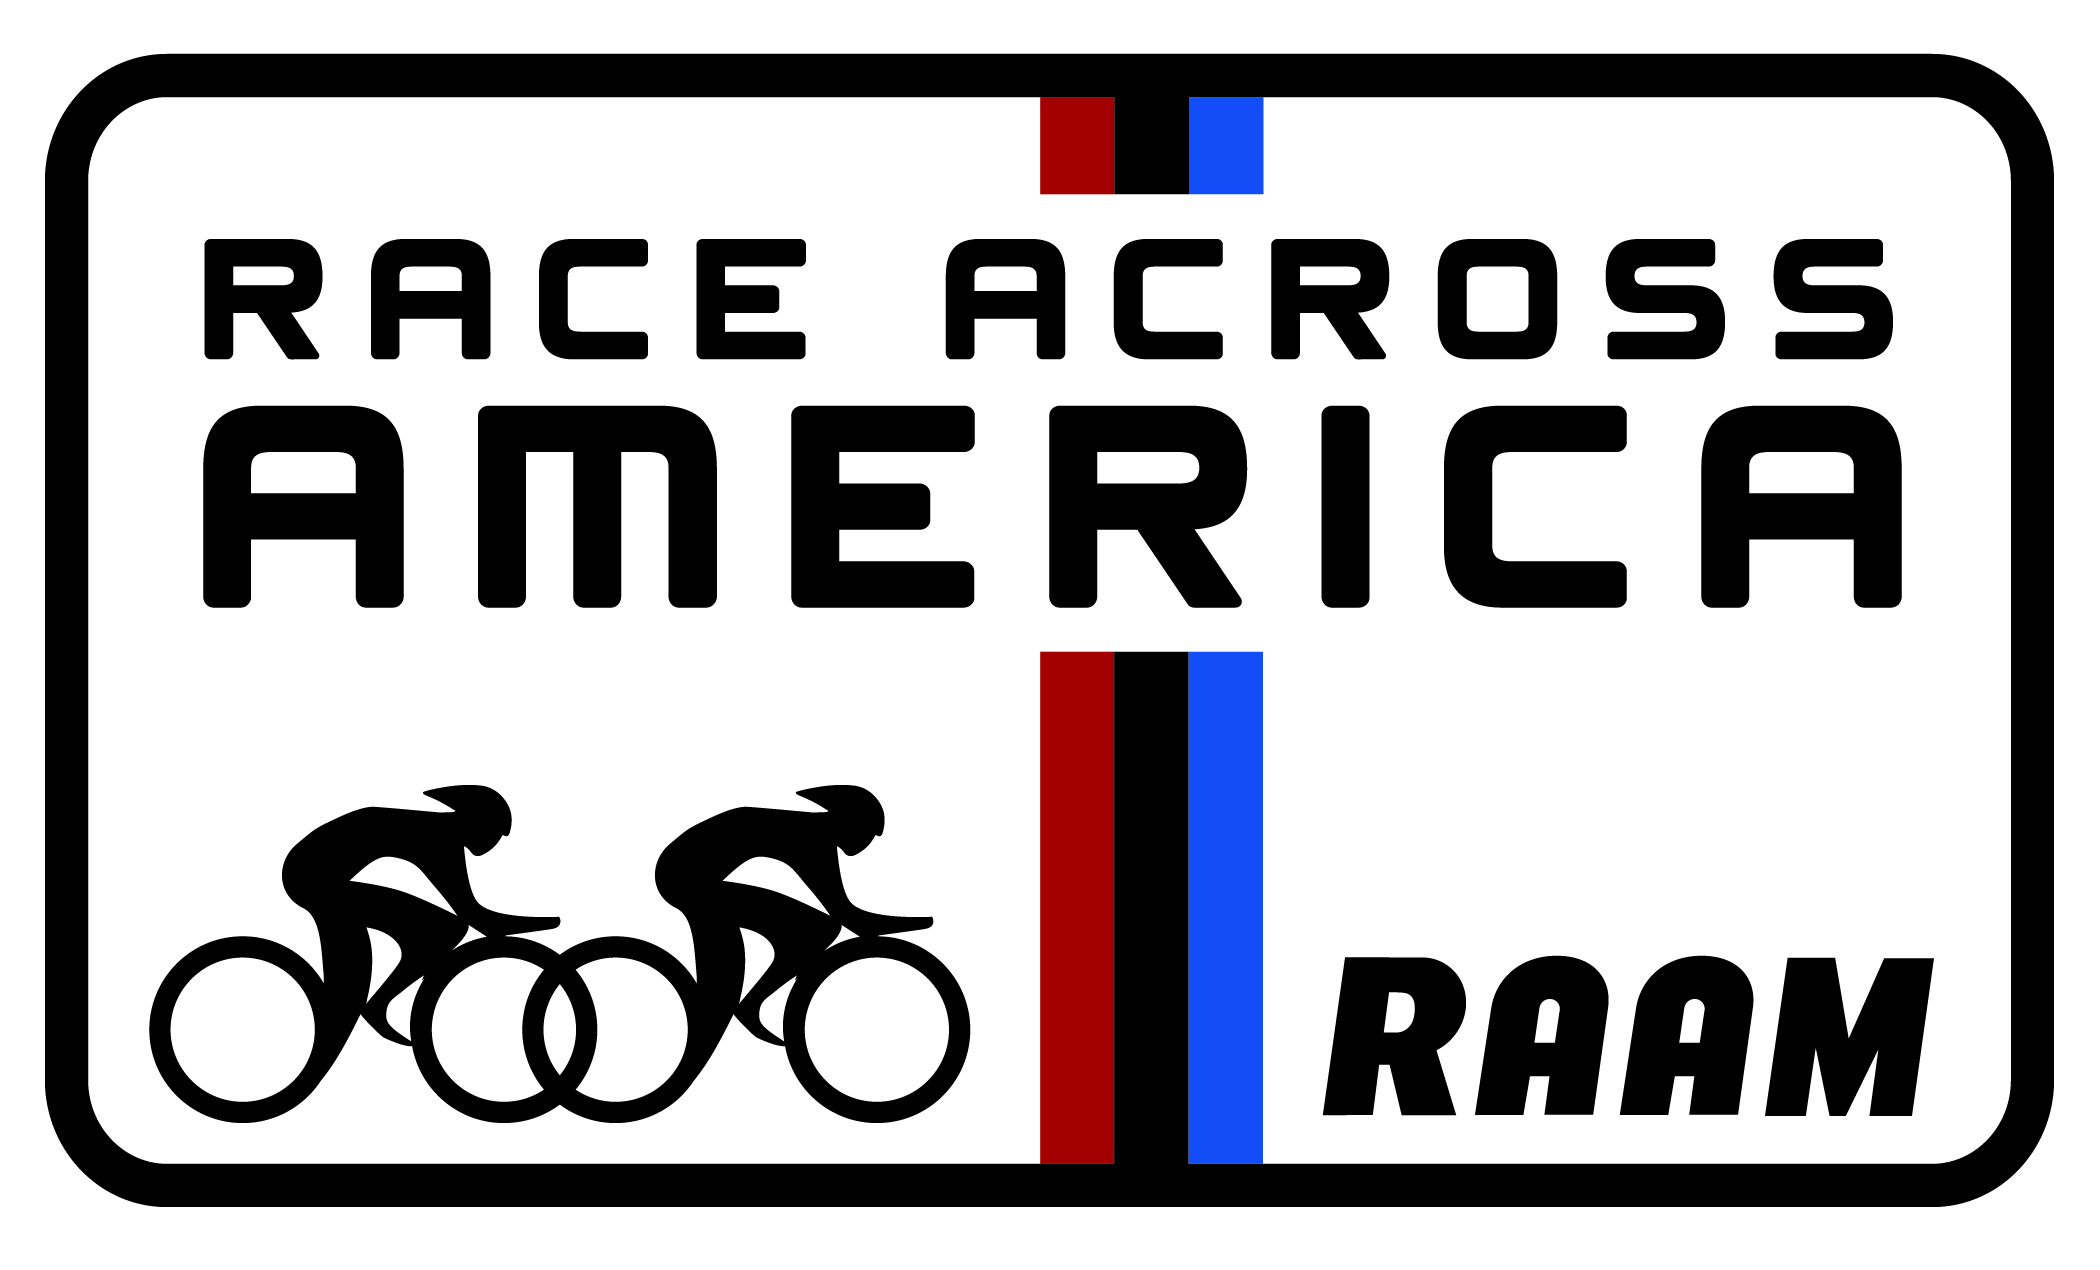 - Learn more at www.raceacrossamerica.org